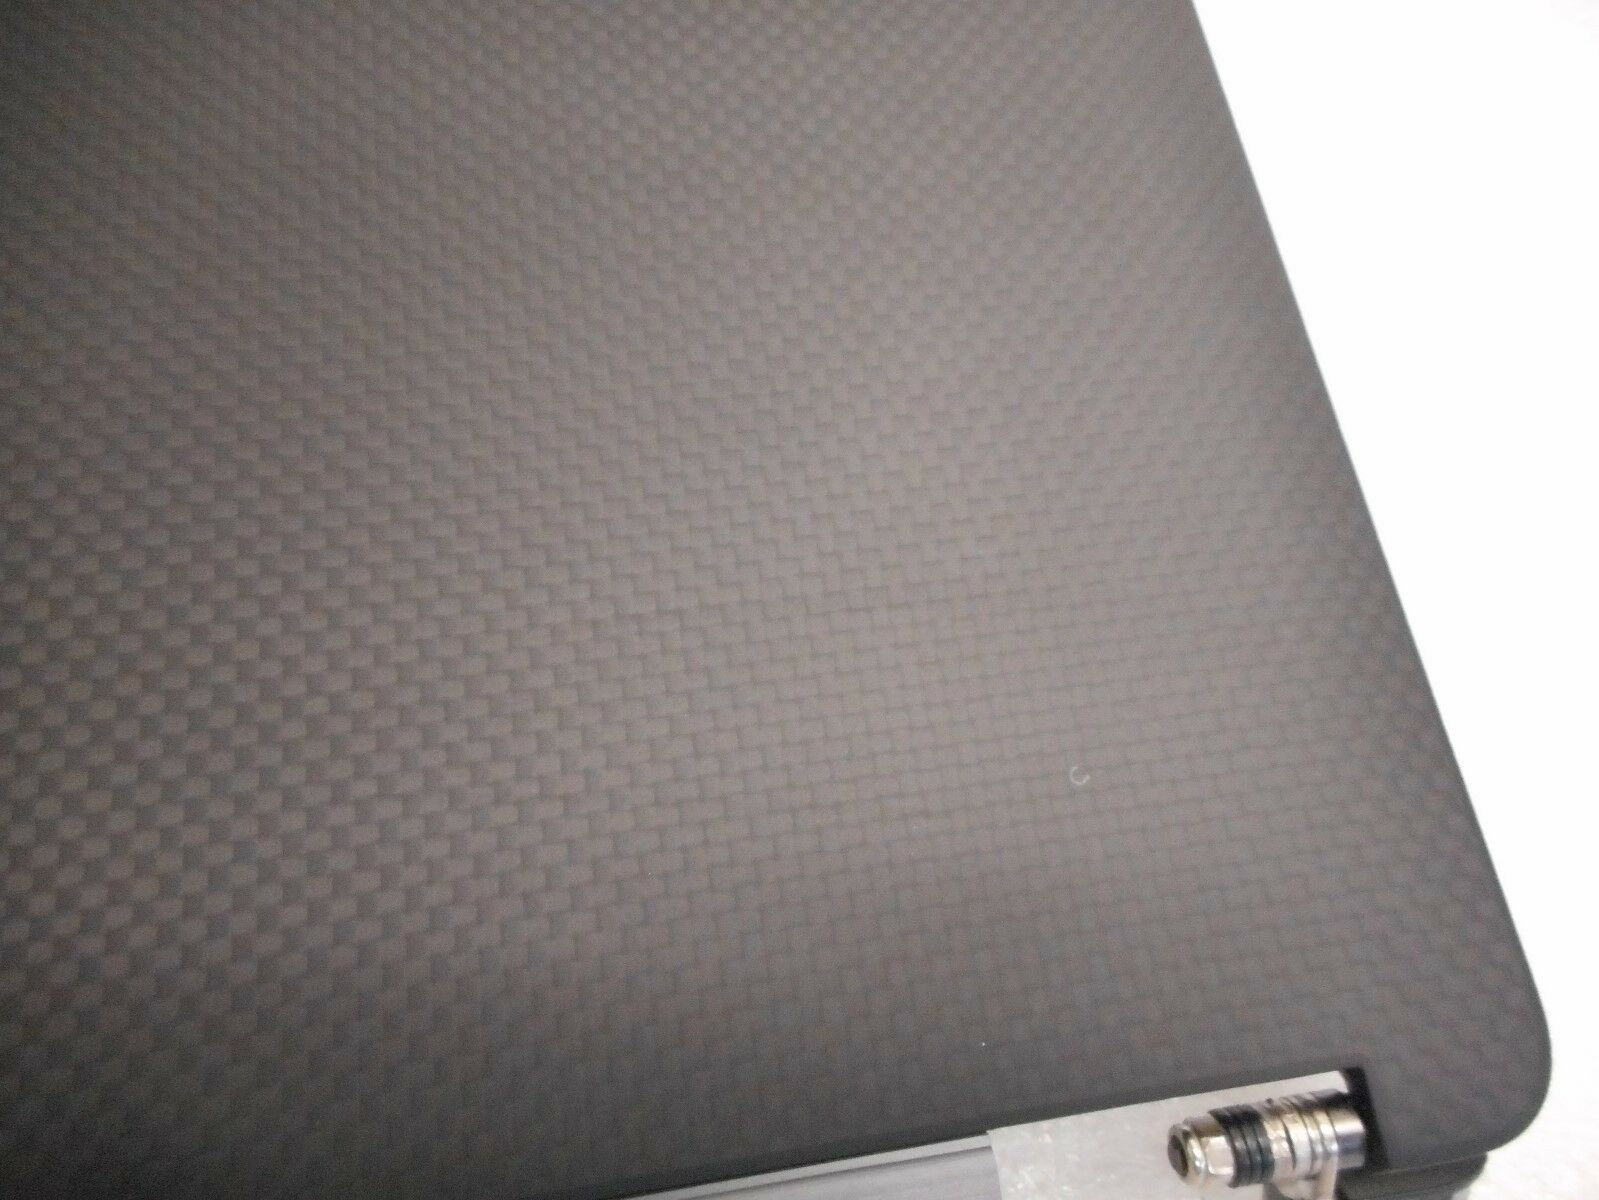 Dell Latitude E7470 LCD Back Cover No Hinges *BIA01* 0FVX0Y AM1DL000603 FVX0Y